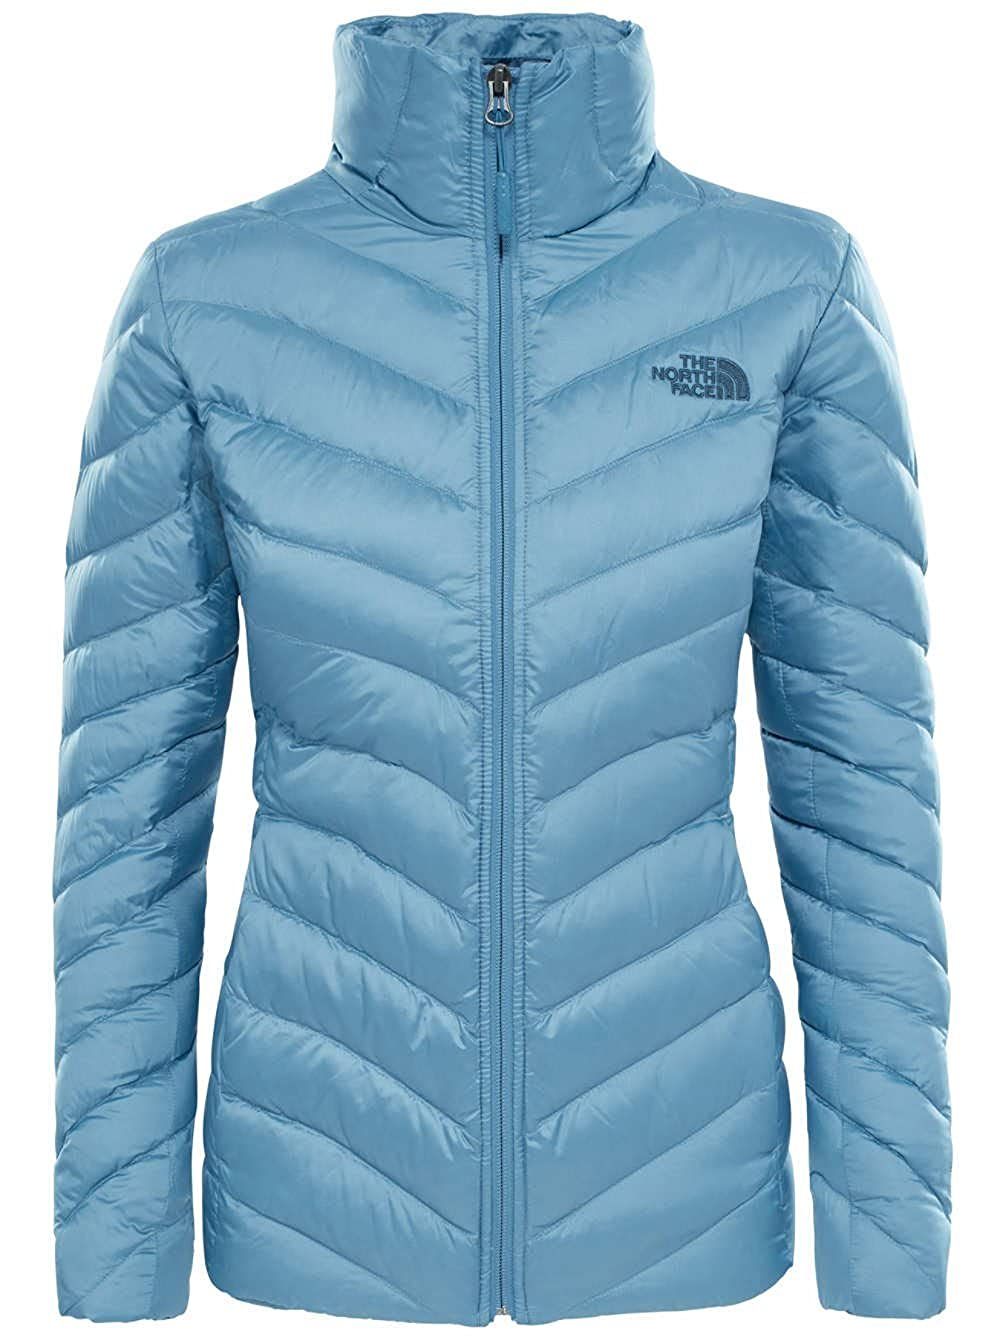 TALLA L. The North Face Jkt 700 Chaqueta Trevail, Mujer